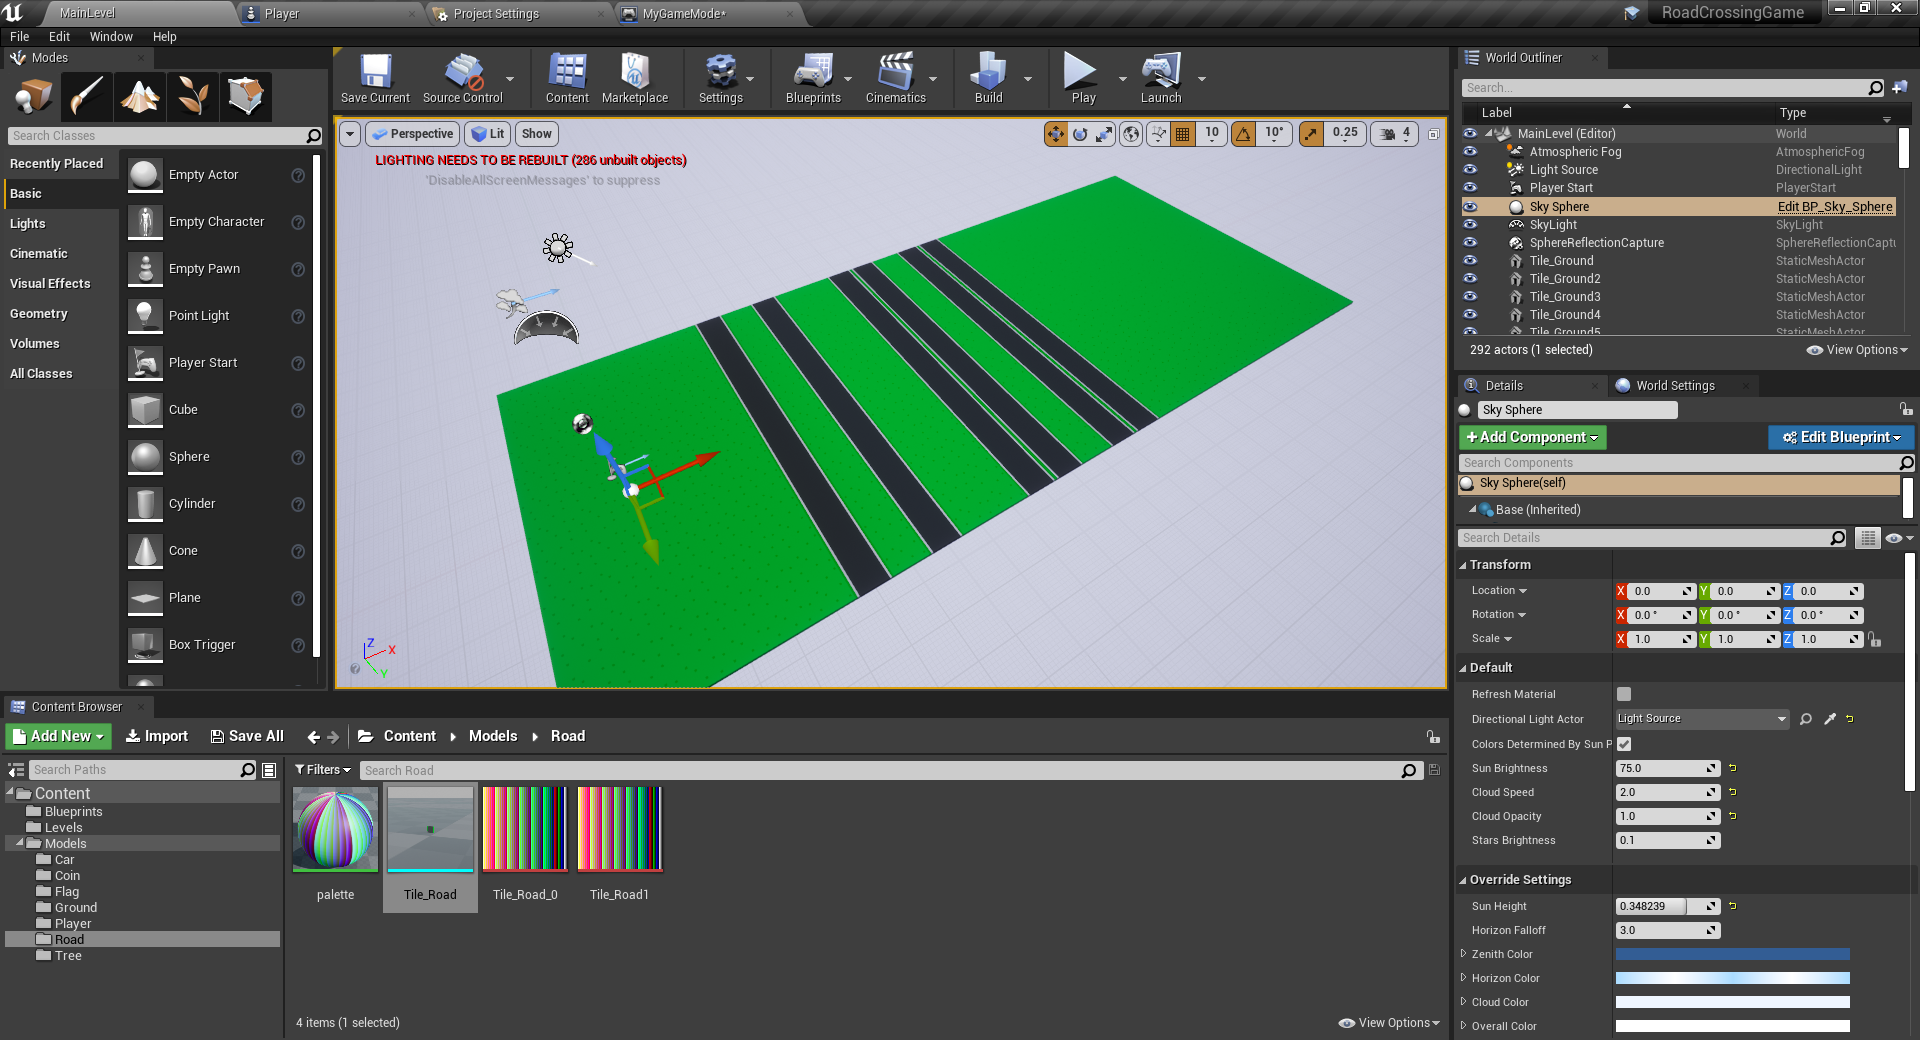 Tile combination in Unreal Engine to create road layout